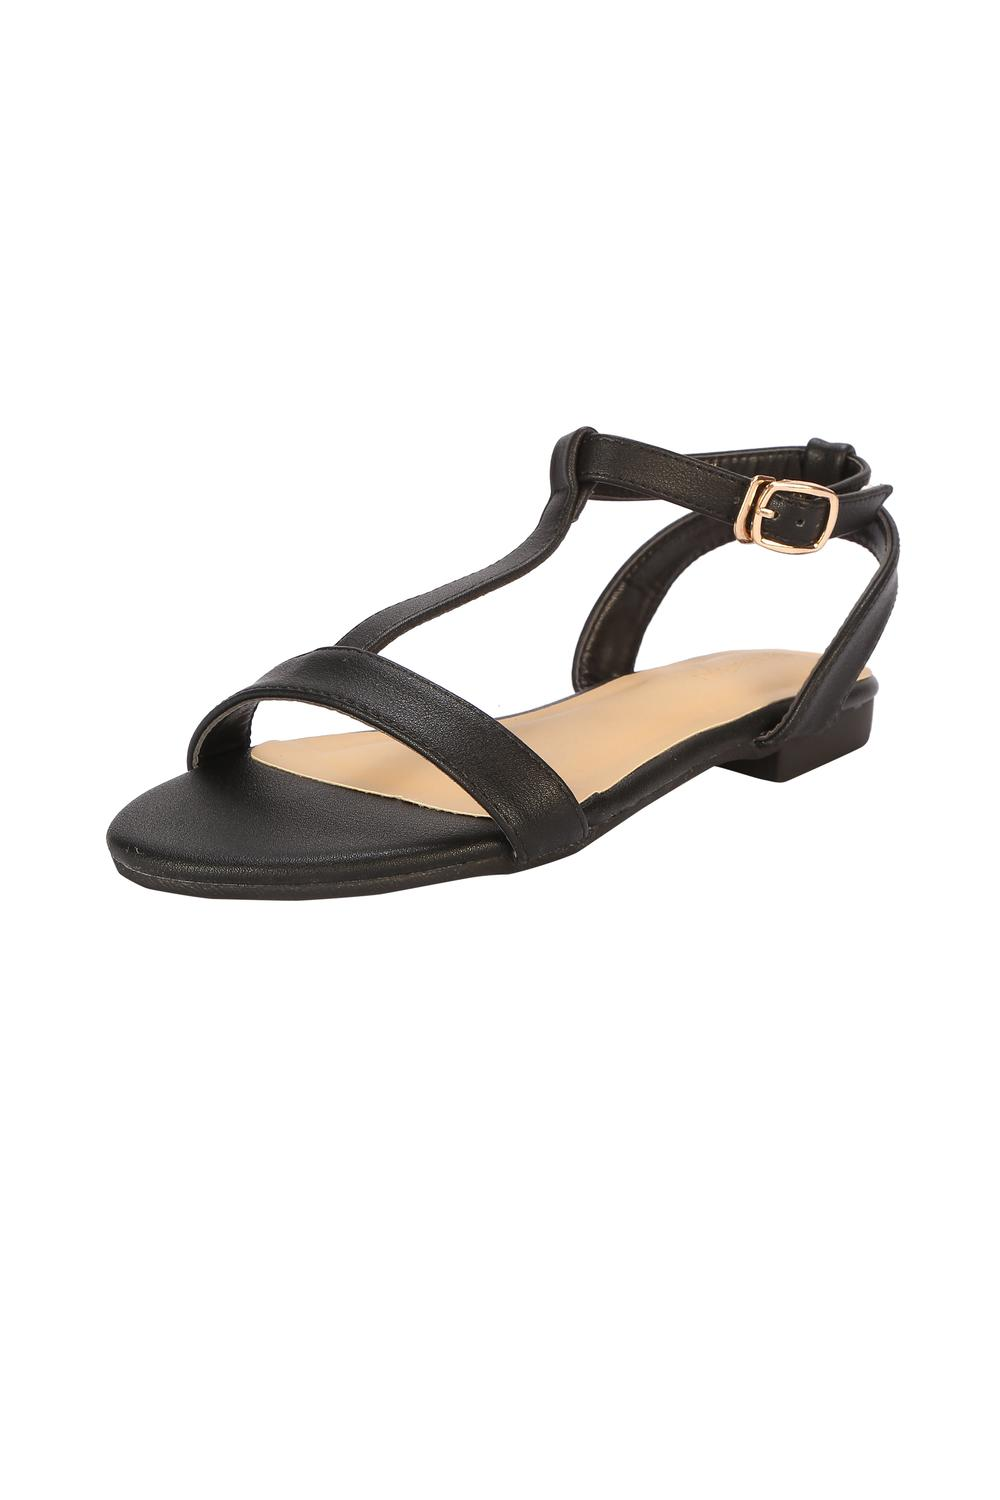 d2889e3b369aa Solly Footwear, Allen Solly Black Sandals for Women at Allensolly.com